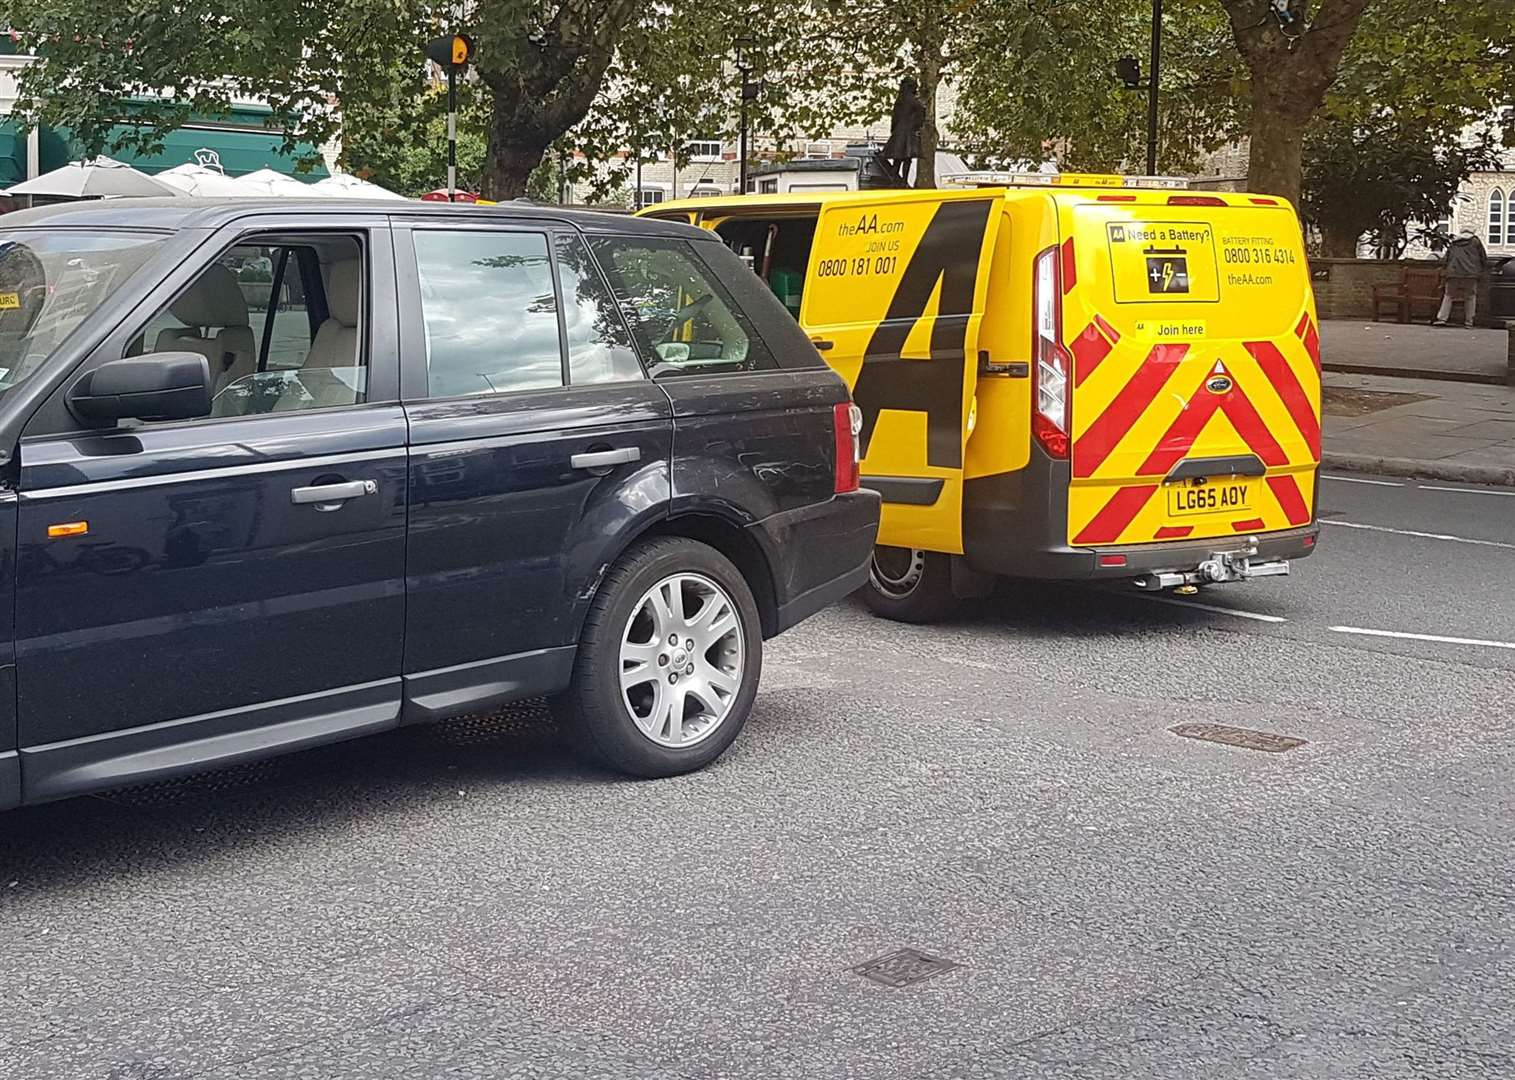 Drivers should not be tempted to pull away, says the AA, if they know they've filled up with the wrong fuel